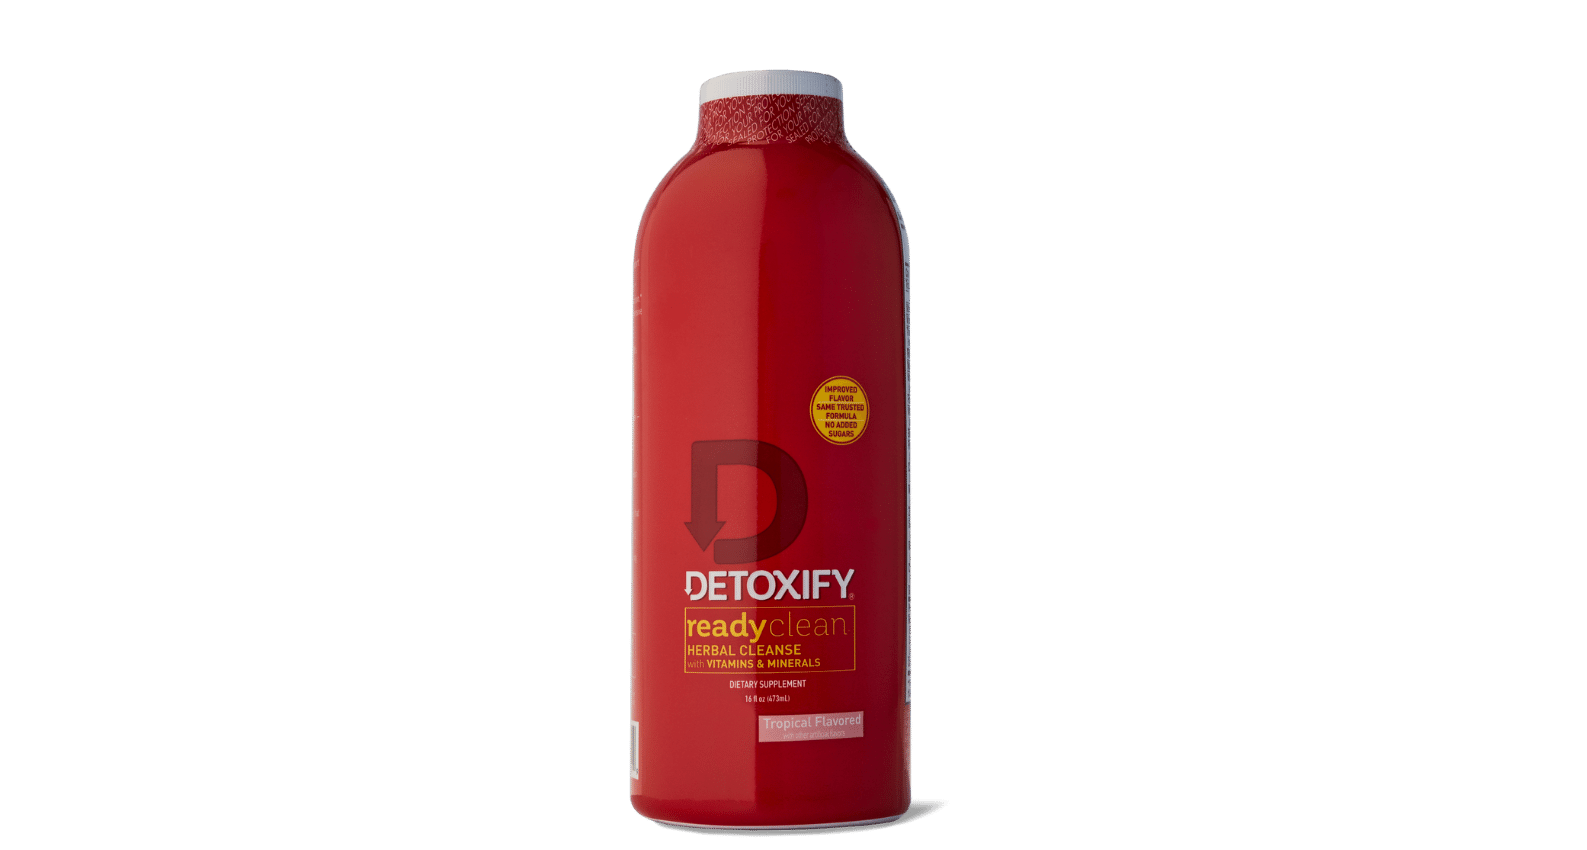 Detoxify Ready Clean is our OG original cleanse gently jumpstarts the natural cleansing abilities in your circulatory, urinary and digestive systems.